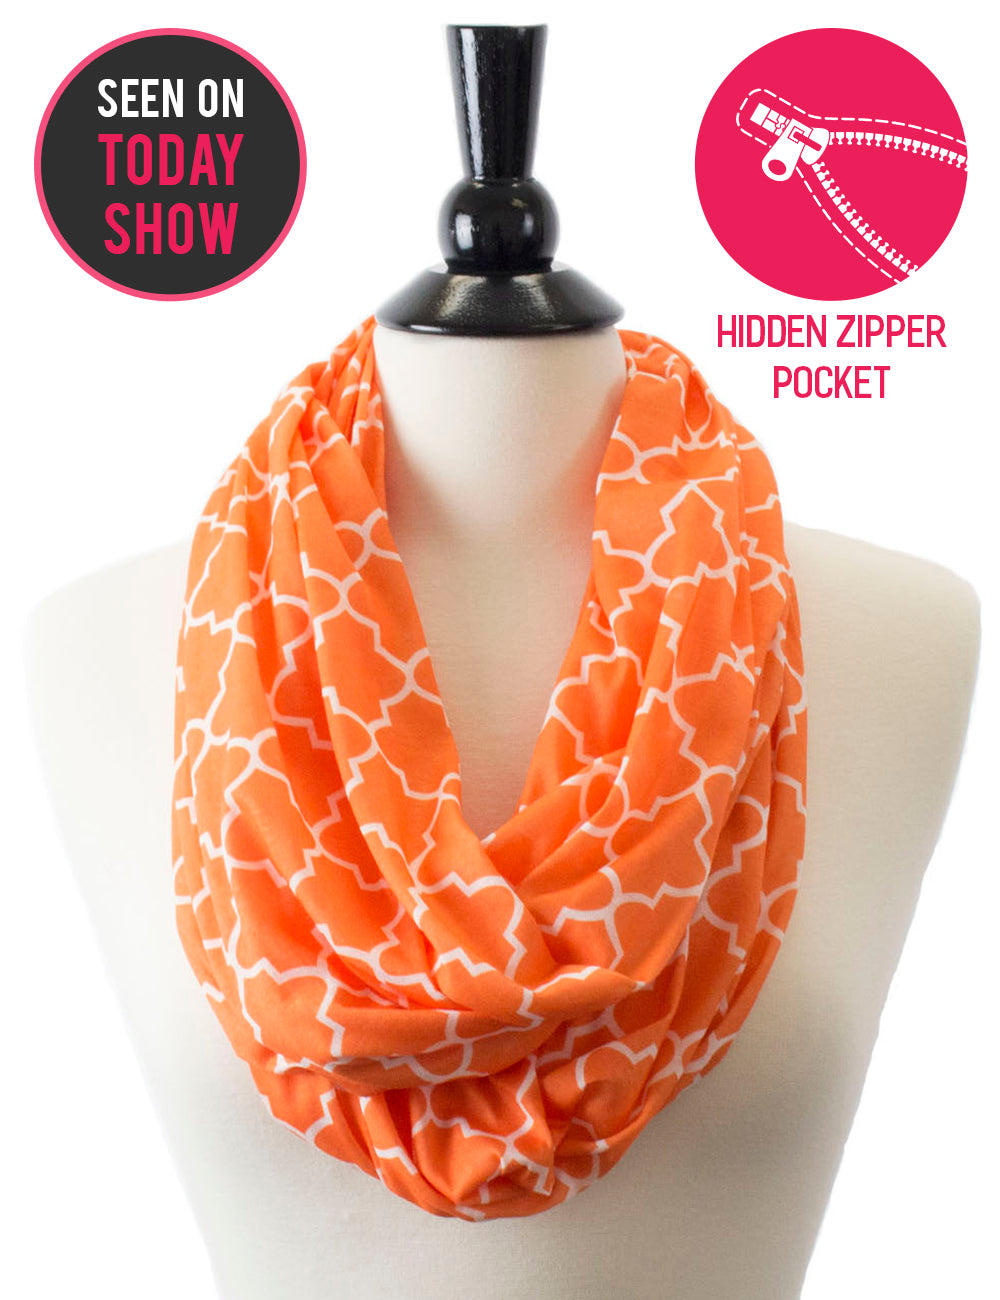 Women's Infinity Scarf with Zipper Pocket, Infinity Scarves with Quatrefoil Patterned Scarf Design & Hidden Zipper Pocket - Pop Fashion